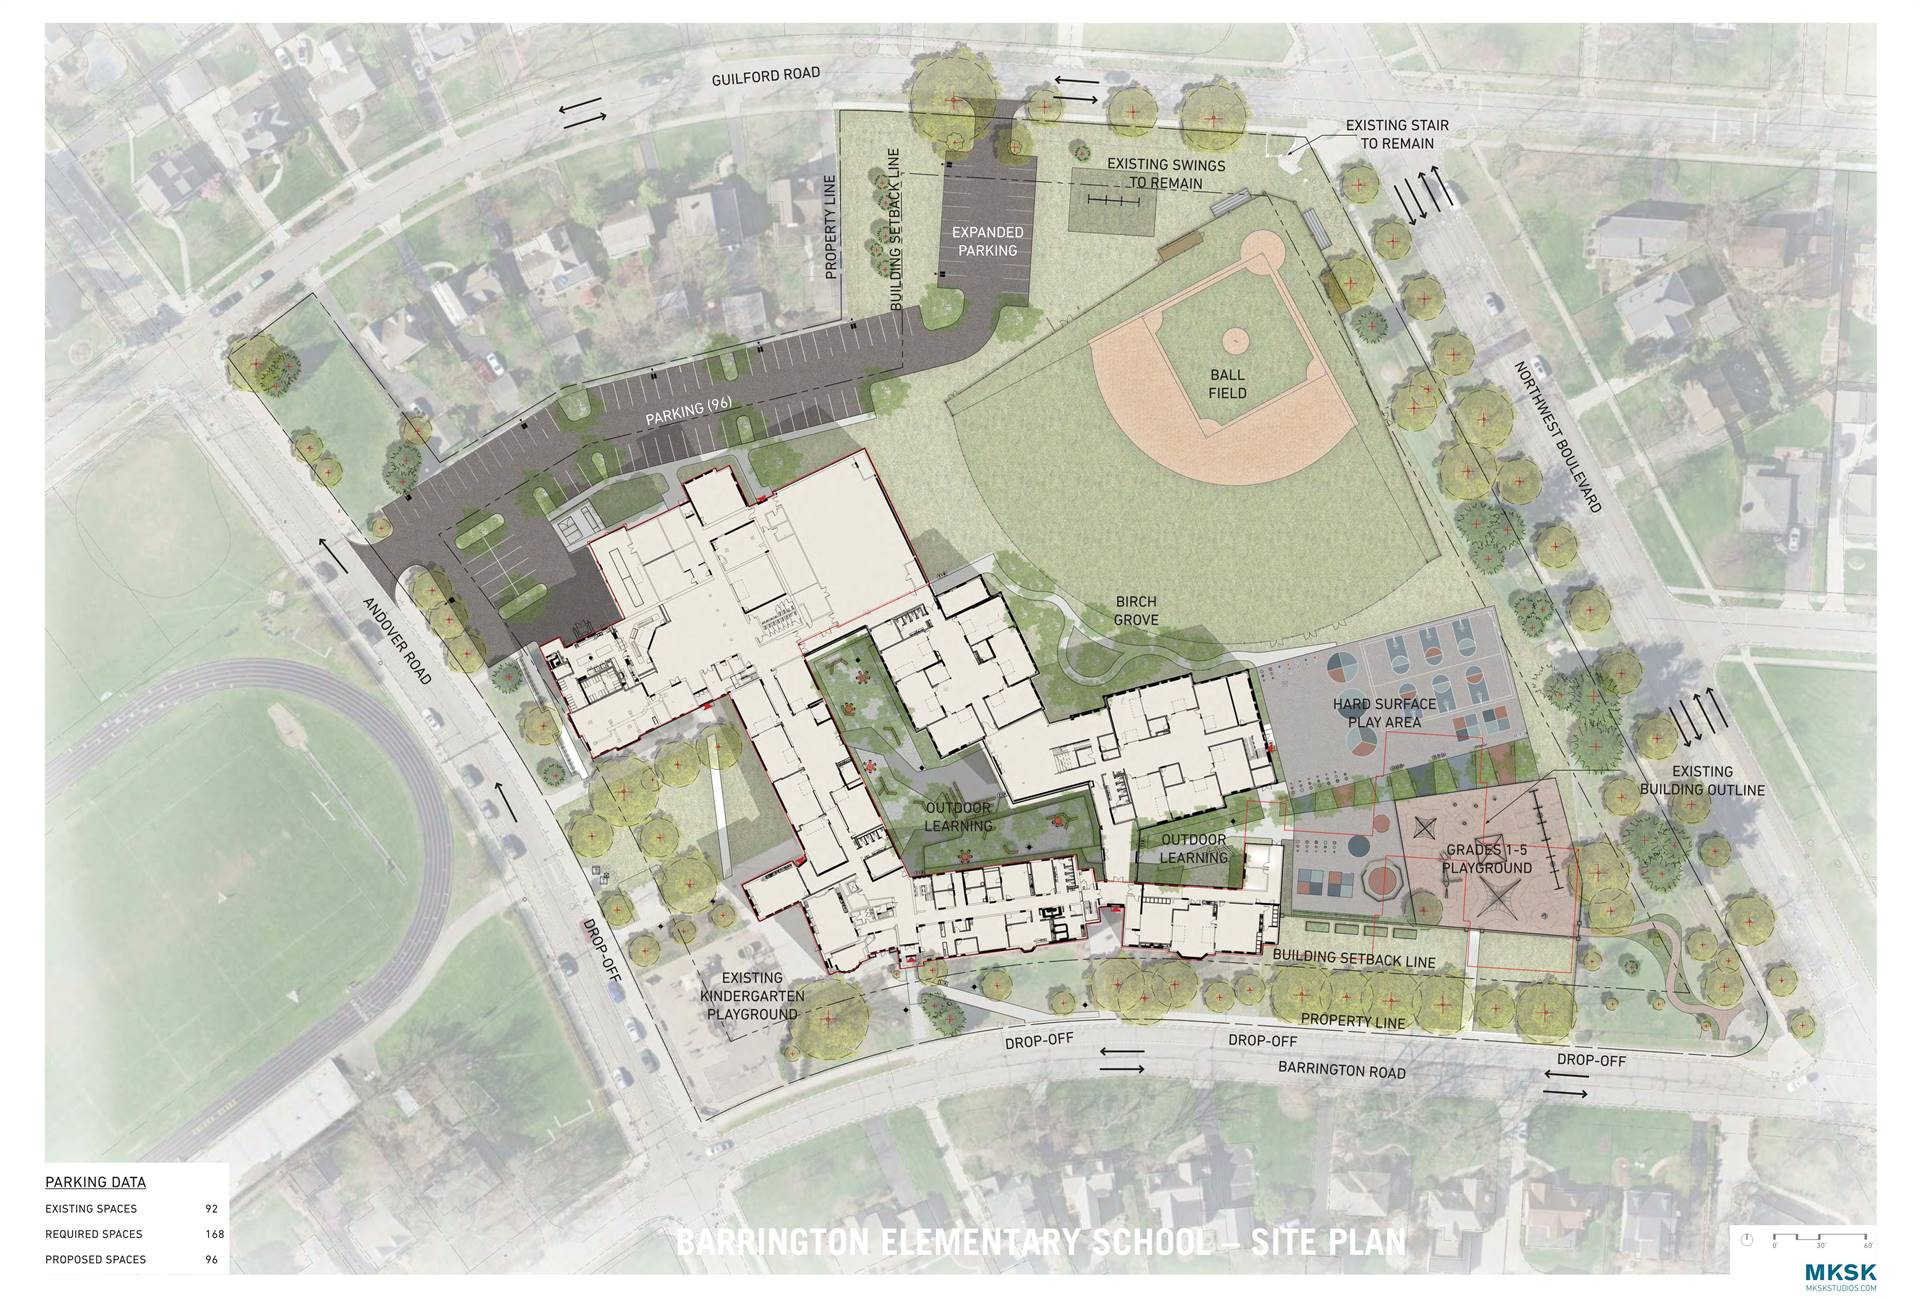 The overall site plan for Barrington Elementary School